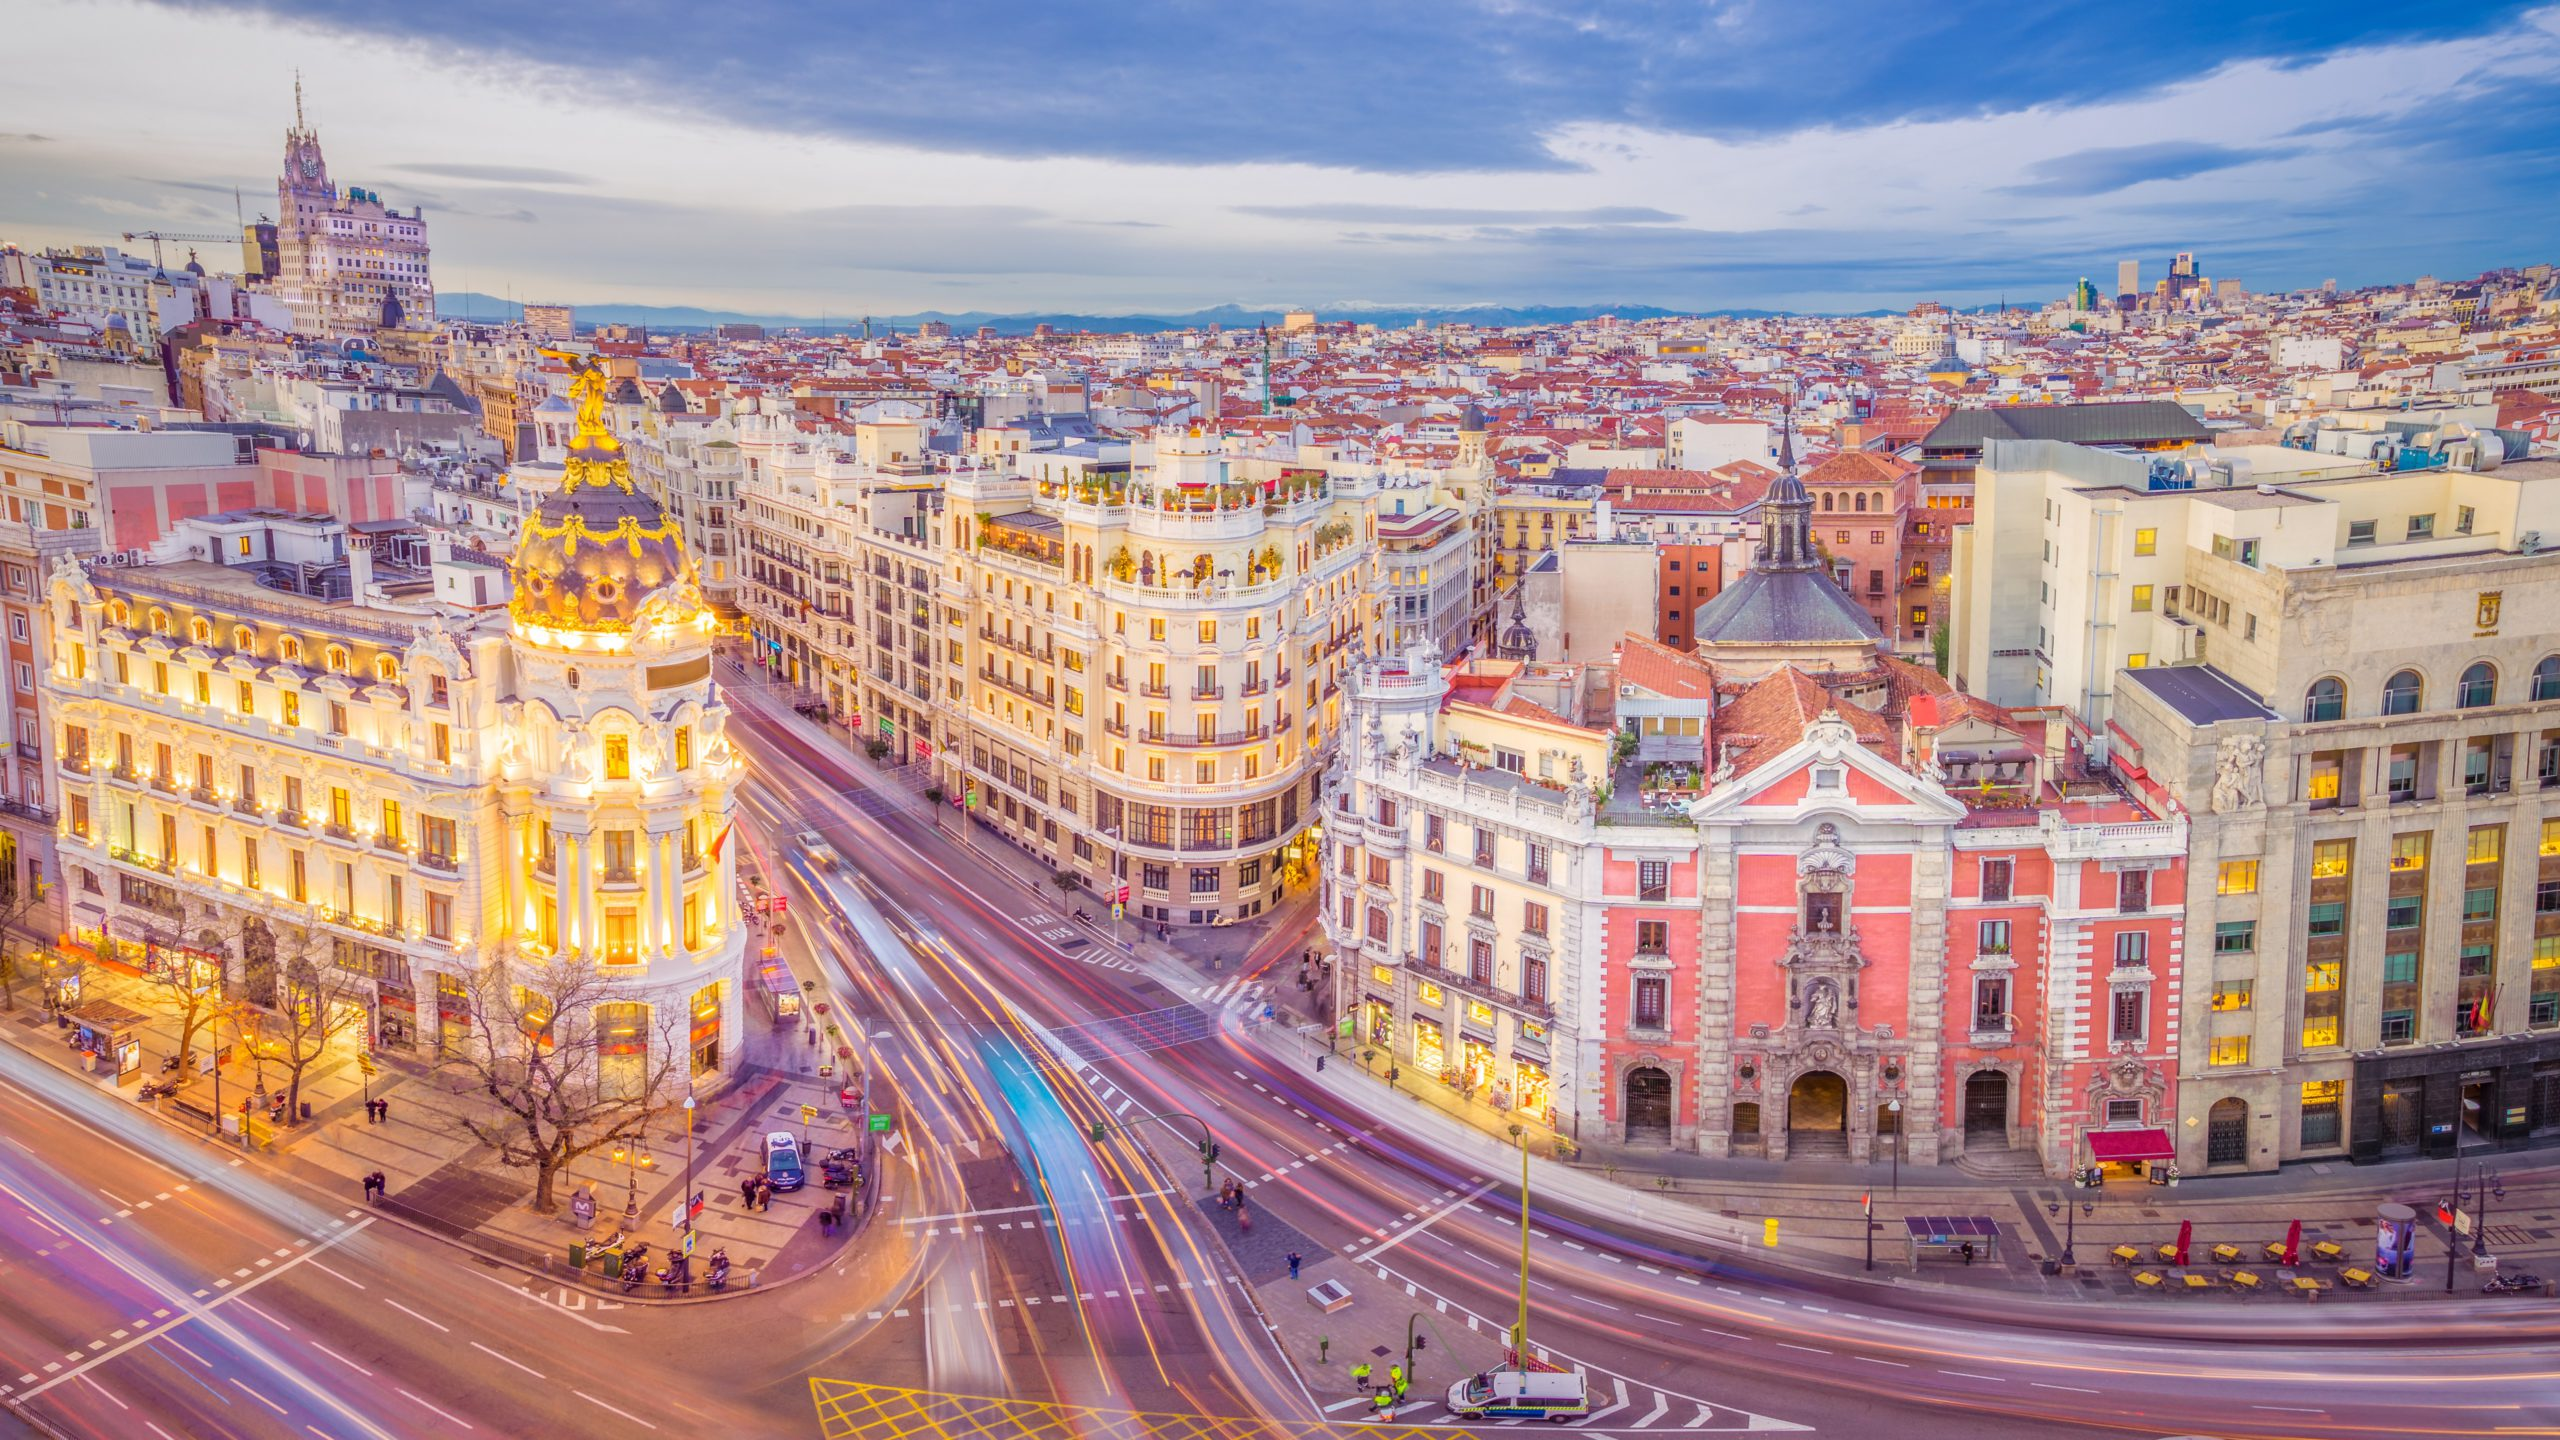 The Atlas Logistic Network is linking Madrid, Spain to the world 1